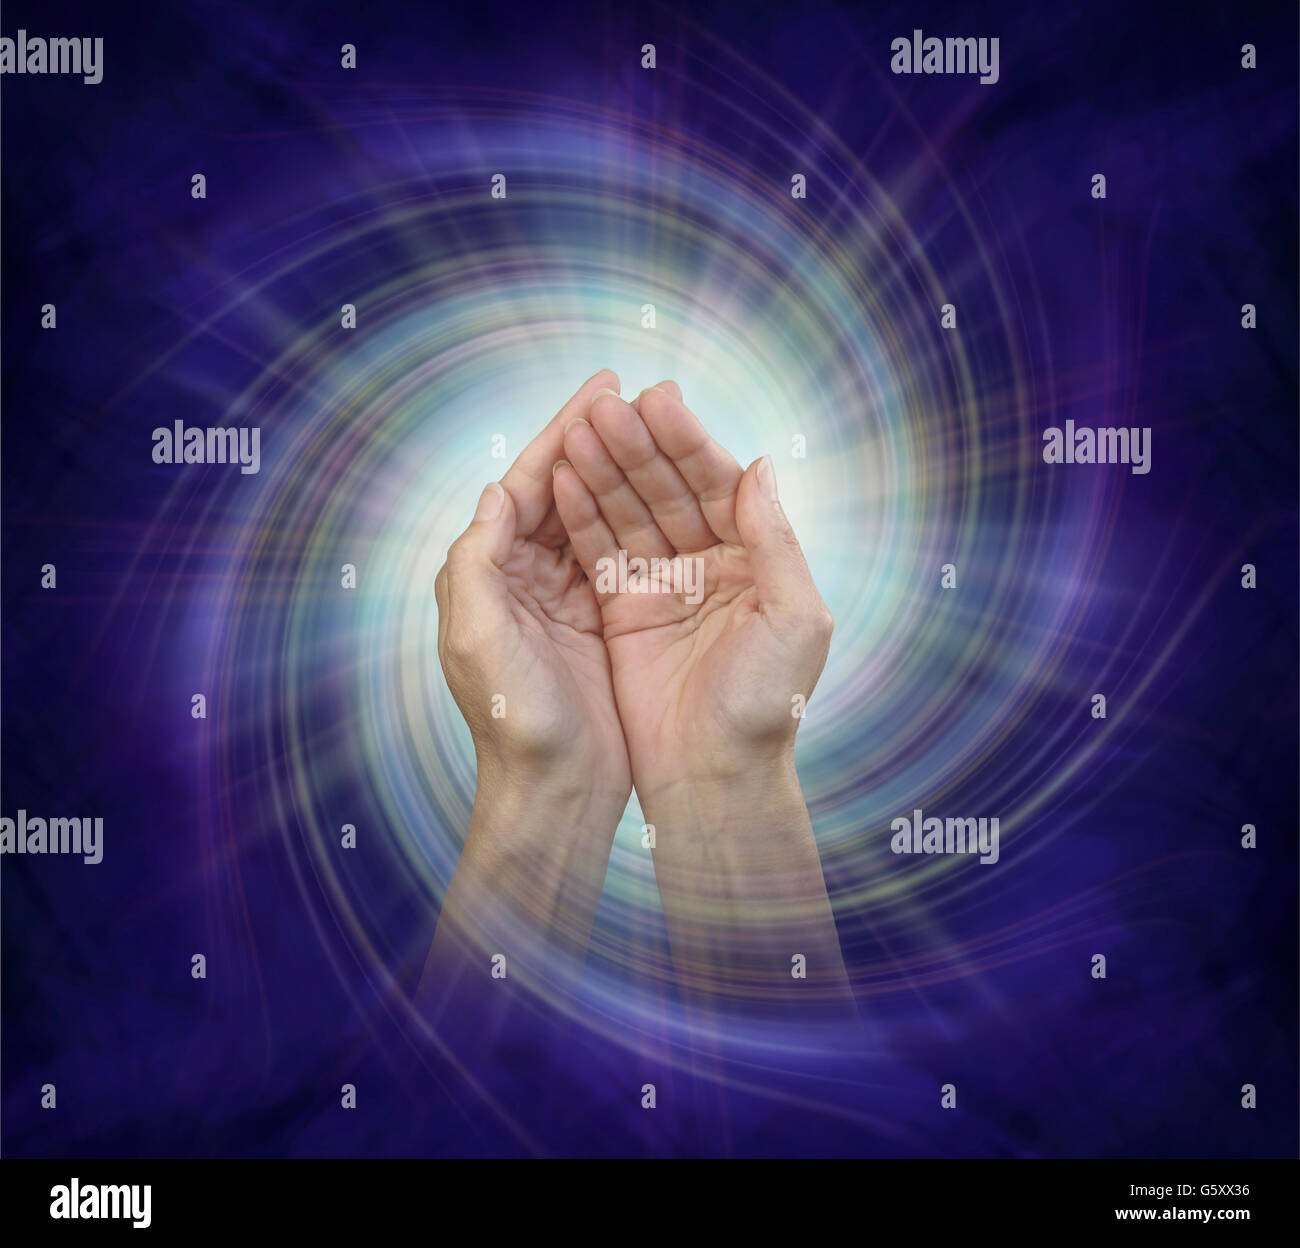 cupped hands with a fine multicolored light burst behind on a white vortex spiraling against a dark ultramarine - Stock Image